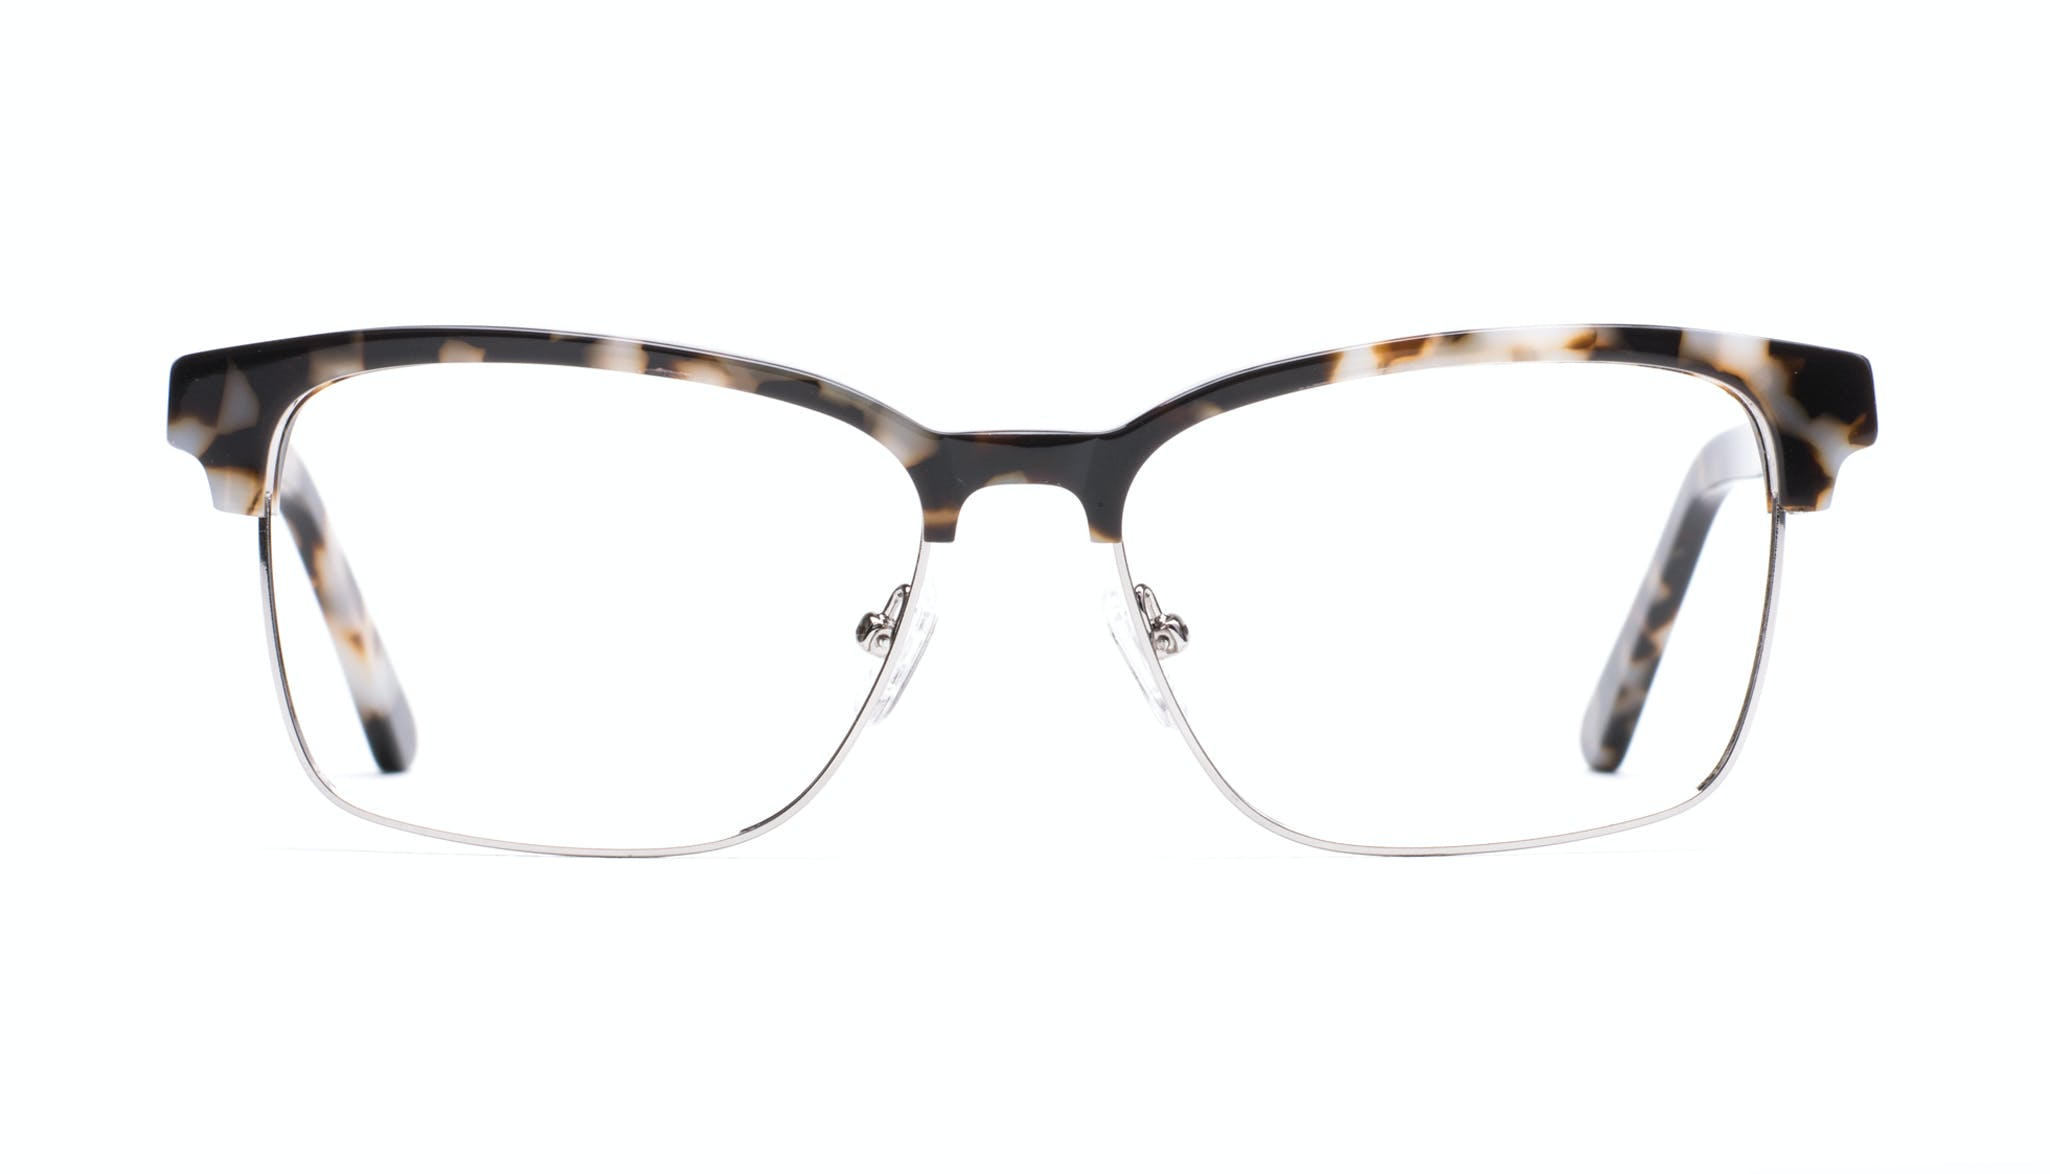 Affordable Fashion Glasses Rectangle Square Eyeglasses Men Gallery Stone Front